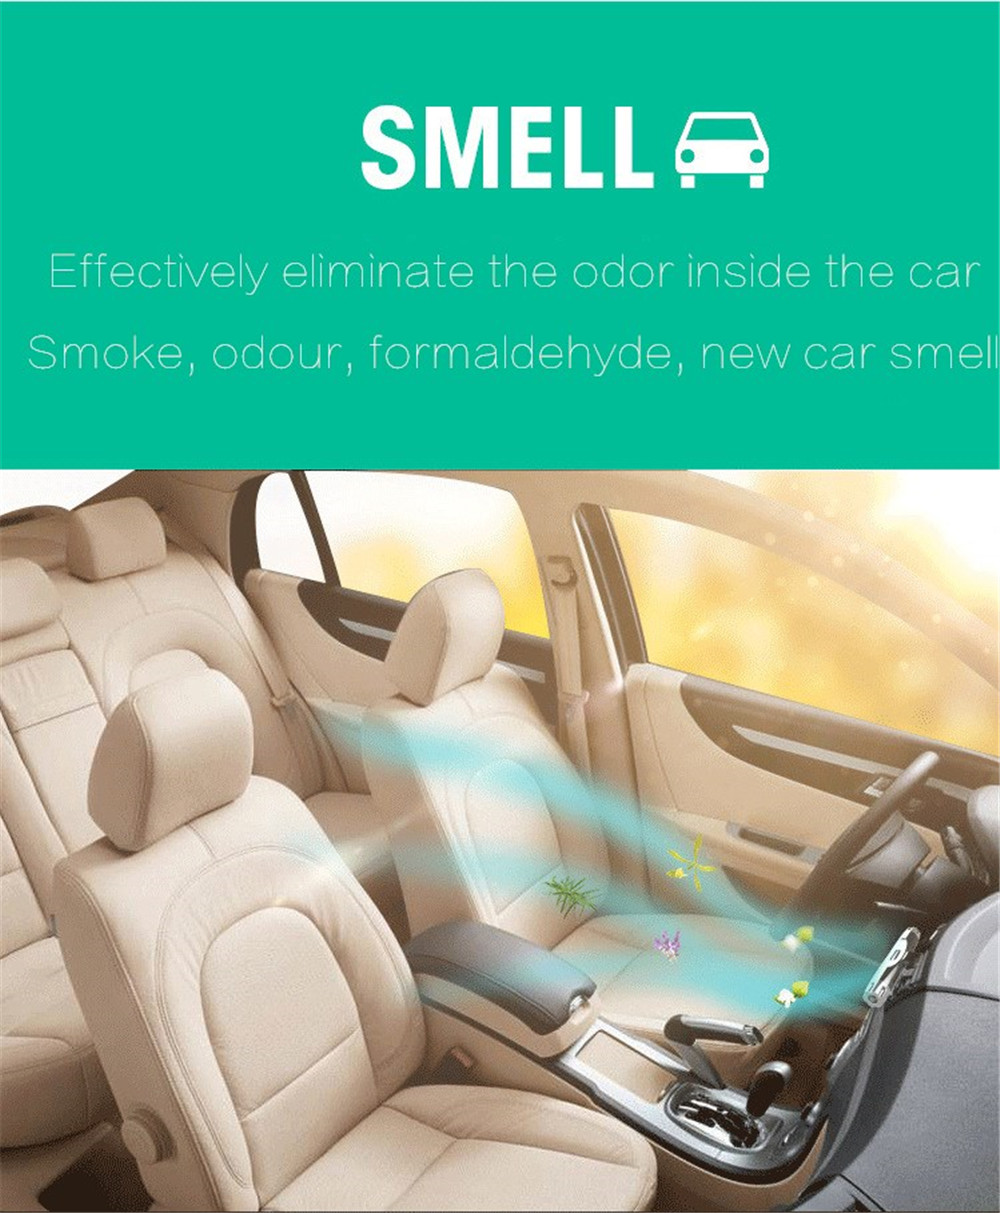 SpedCrd Car Freshener Auto Outlet Perfume Vent Air Diffuser